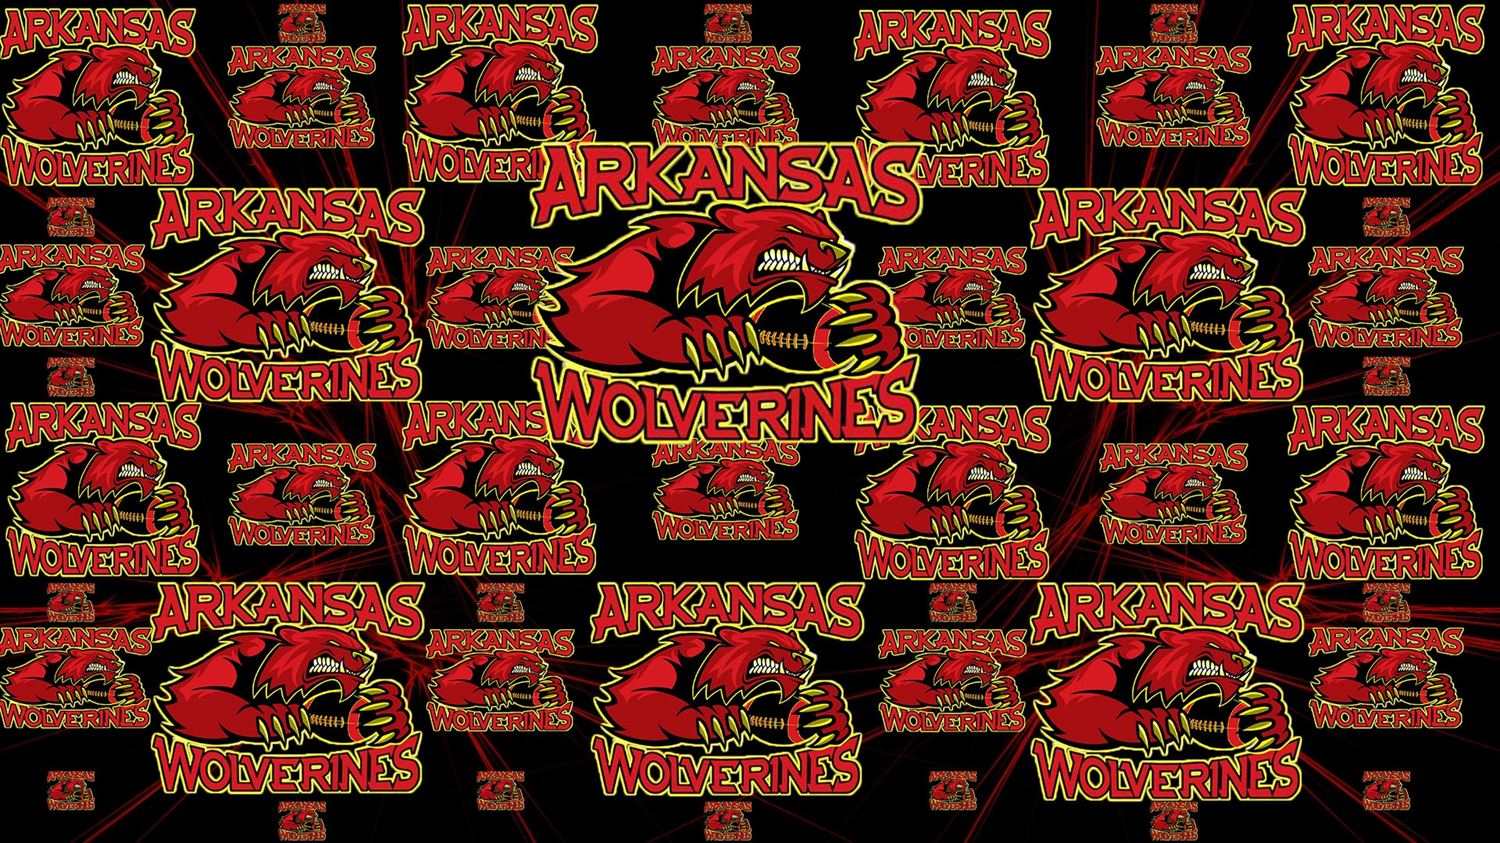 National Conference - Arkansas Wolverines